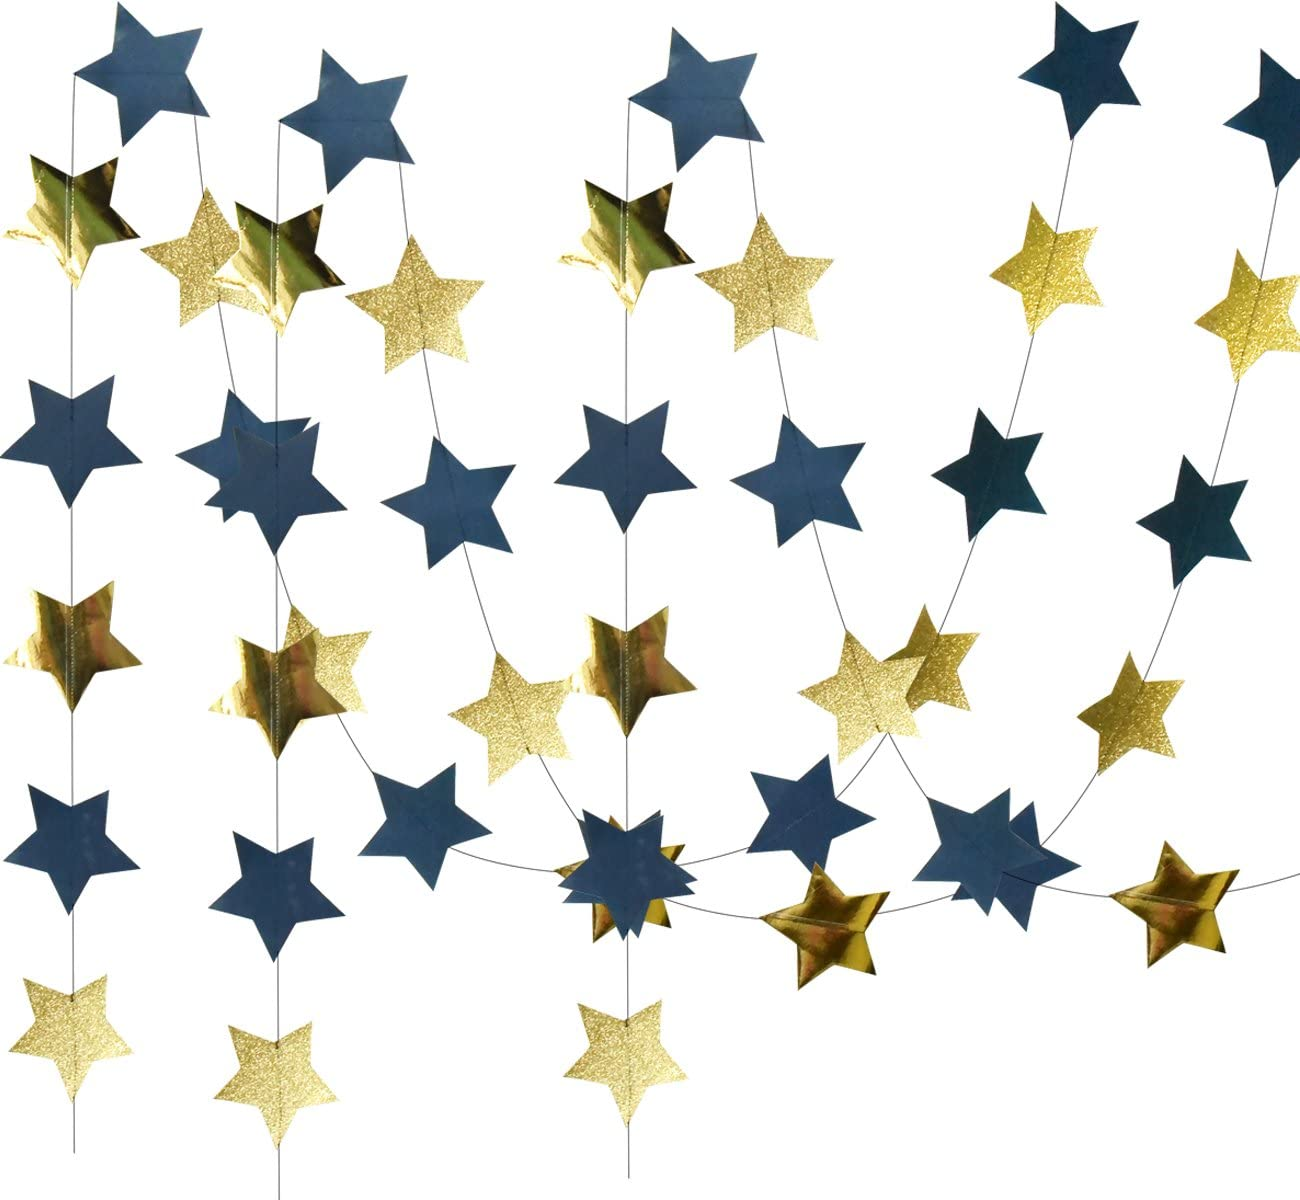 Furuix Outer Space Decorations Birthday Party Decorations 2pcs Navy Blue Glitter Gold Paper Star Garlands Star String for Baby Shower Decorations